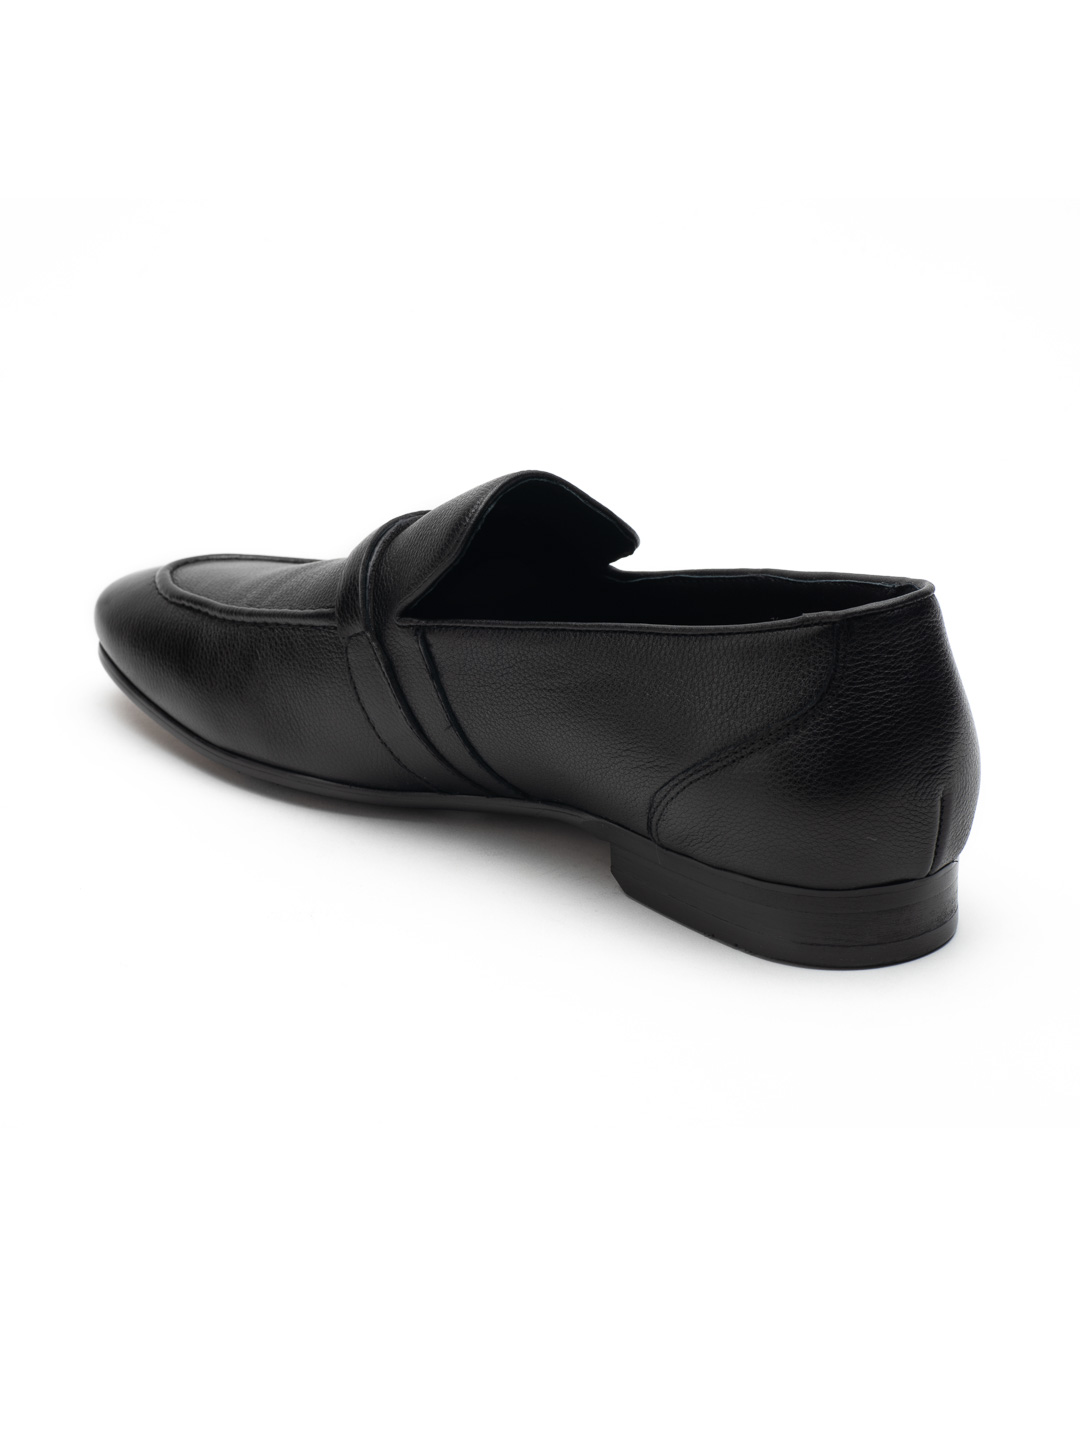 Heel _ Buckle London-HBDARM084-Carousal Black Loafers-Black-3